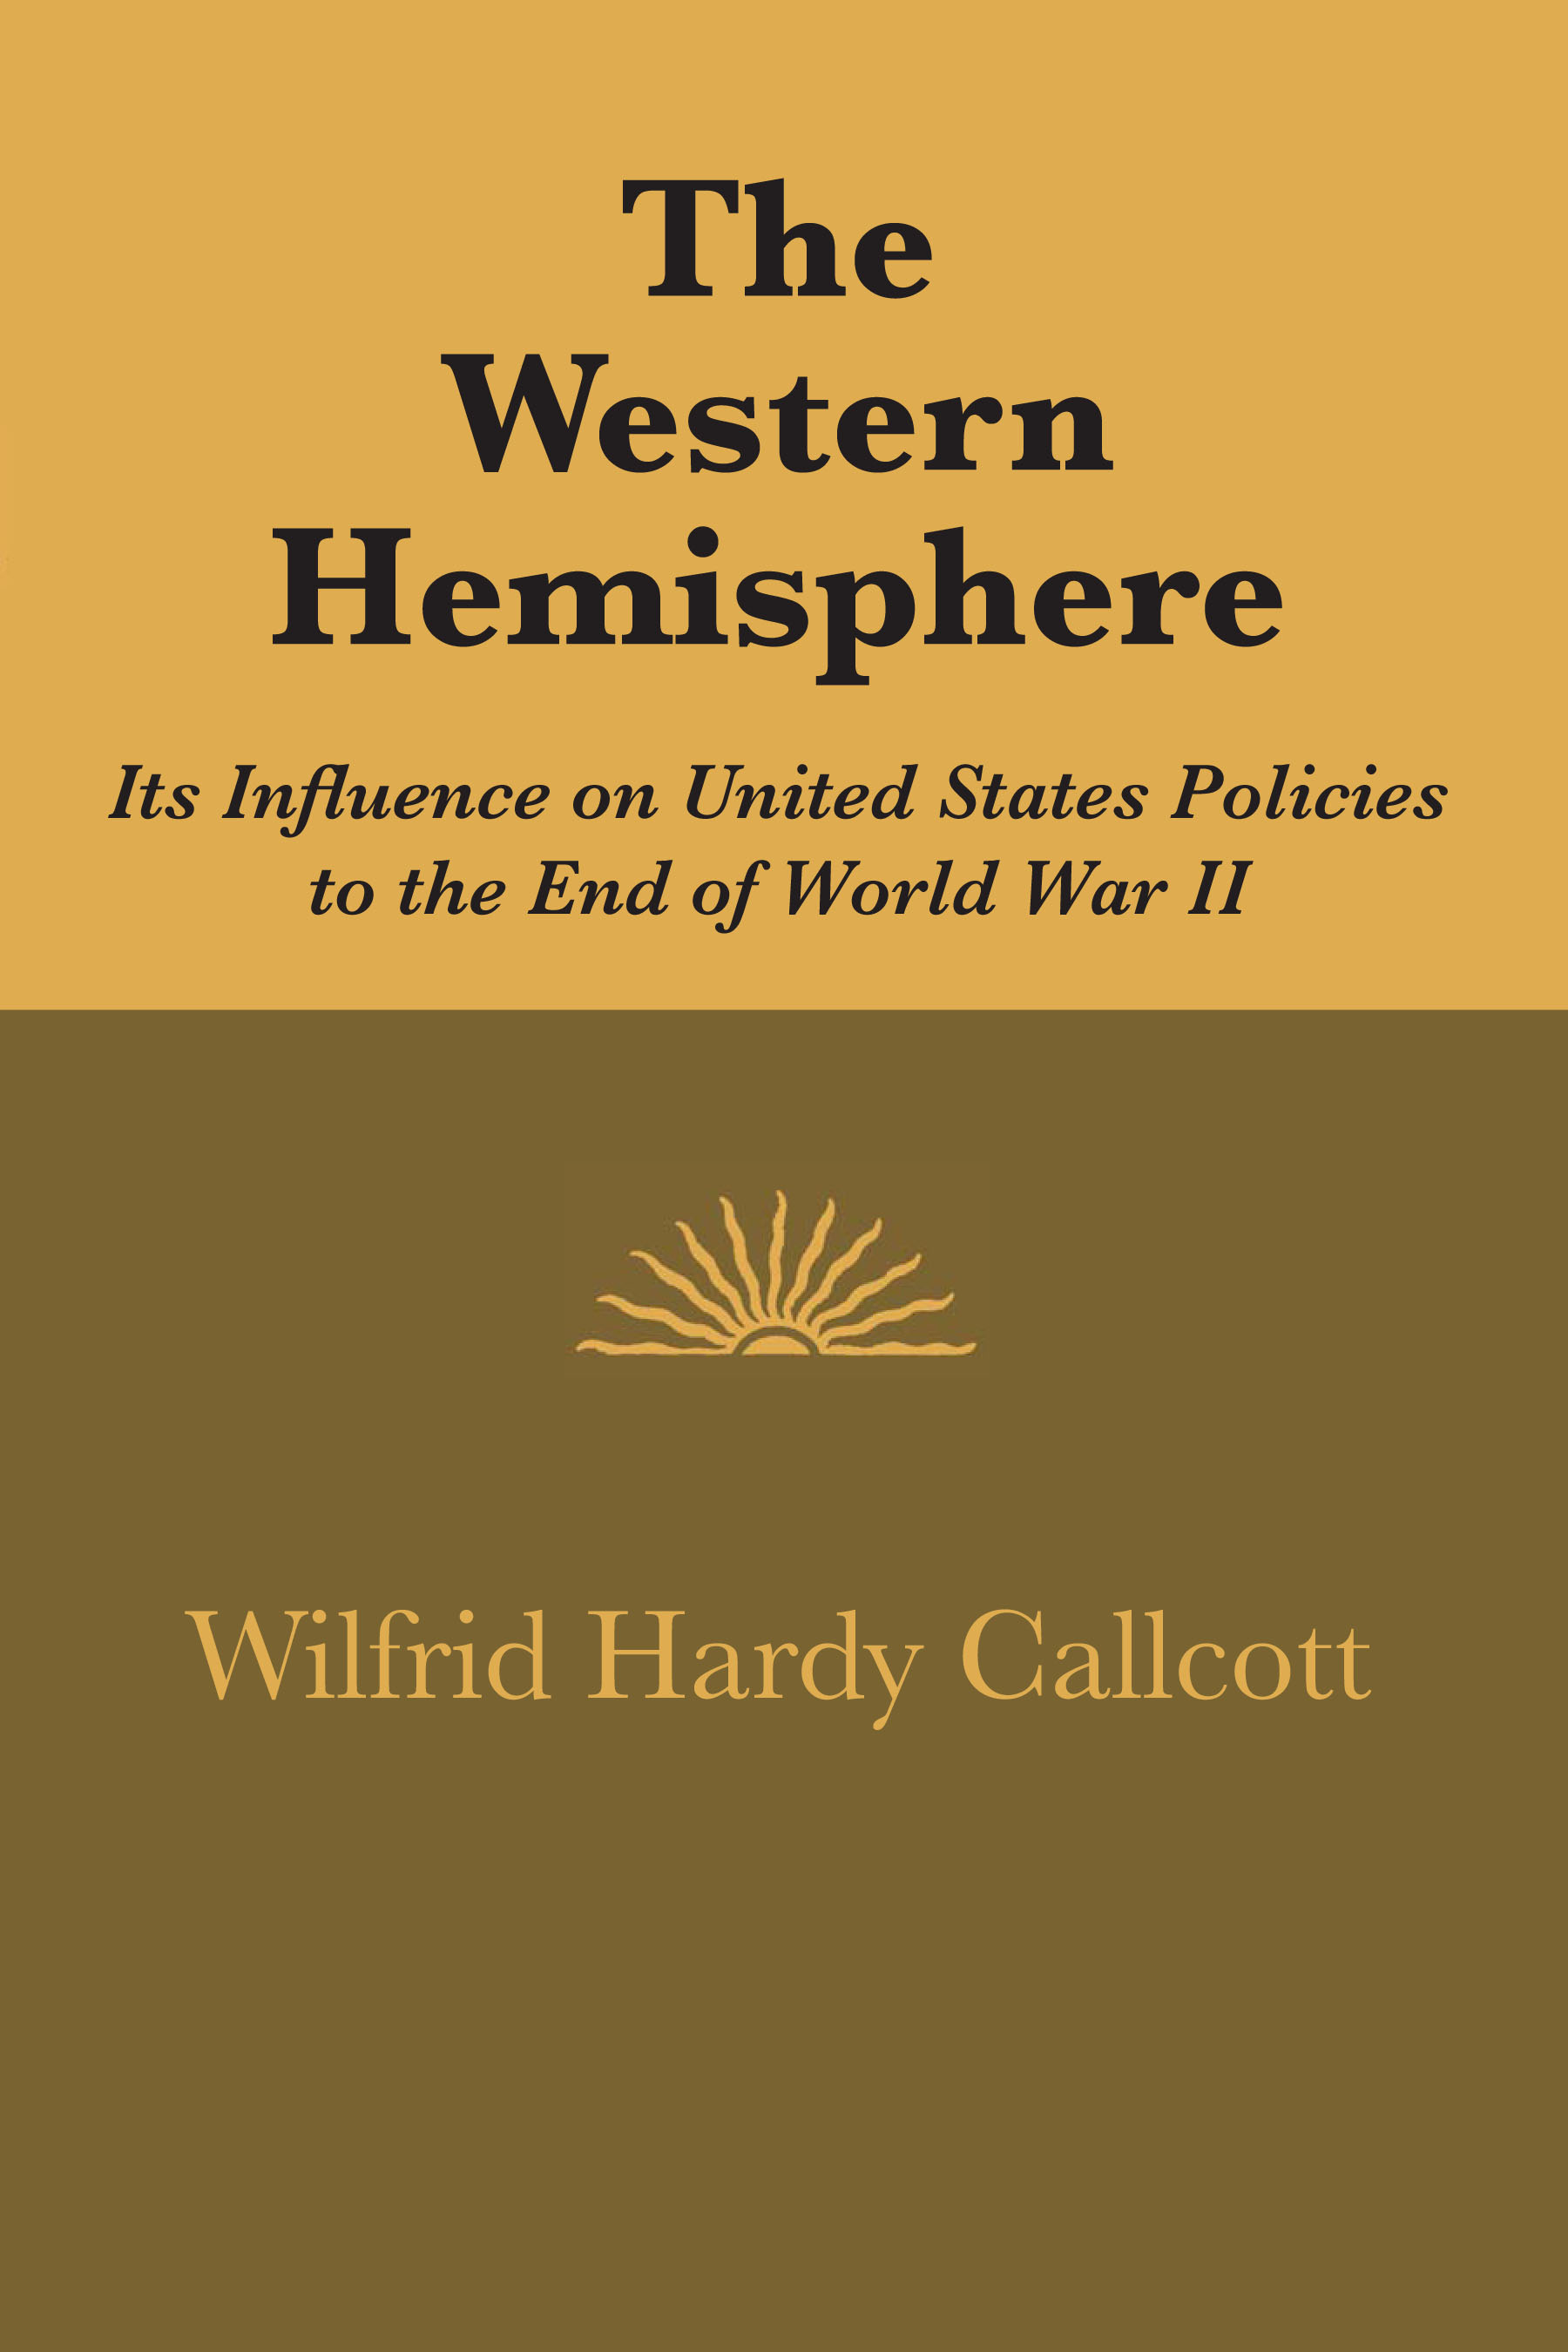 Cover of The Western Hemisphere